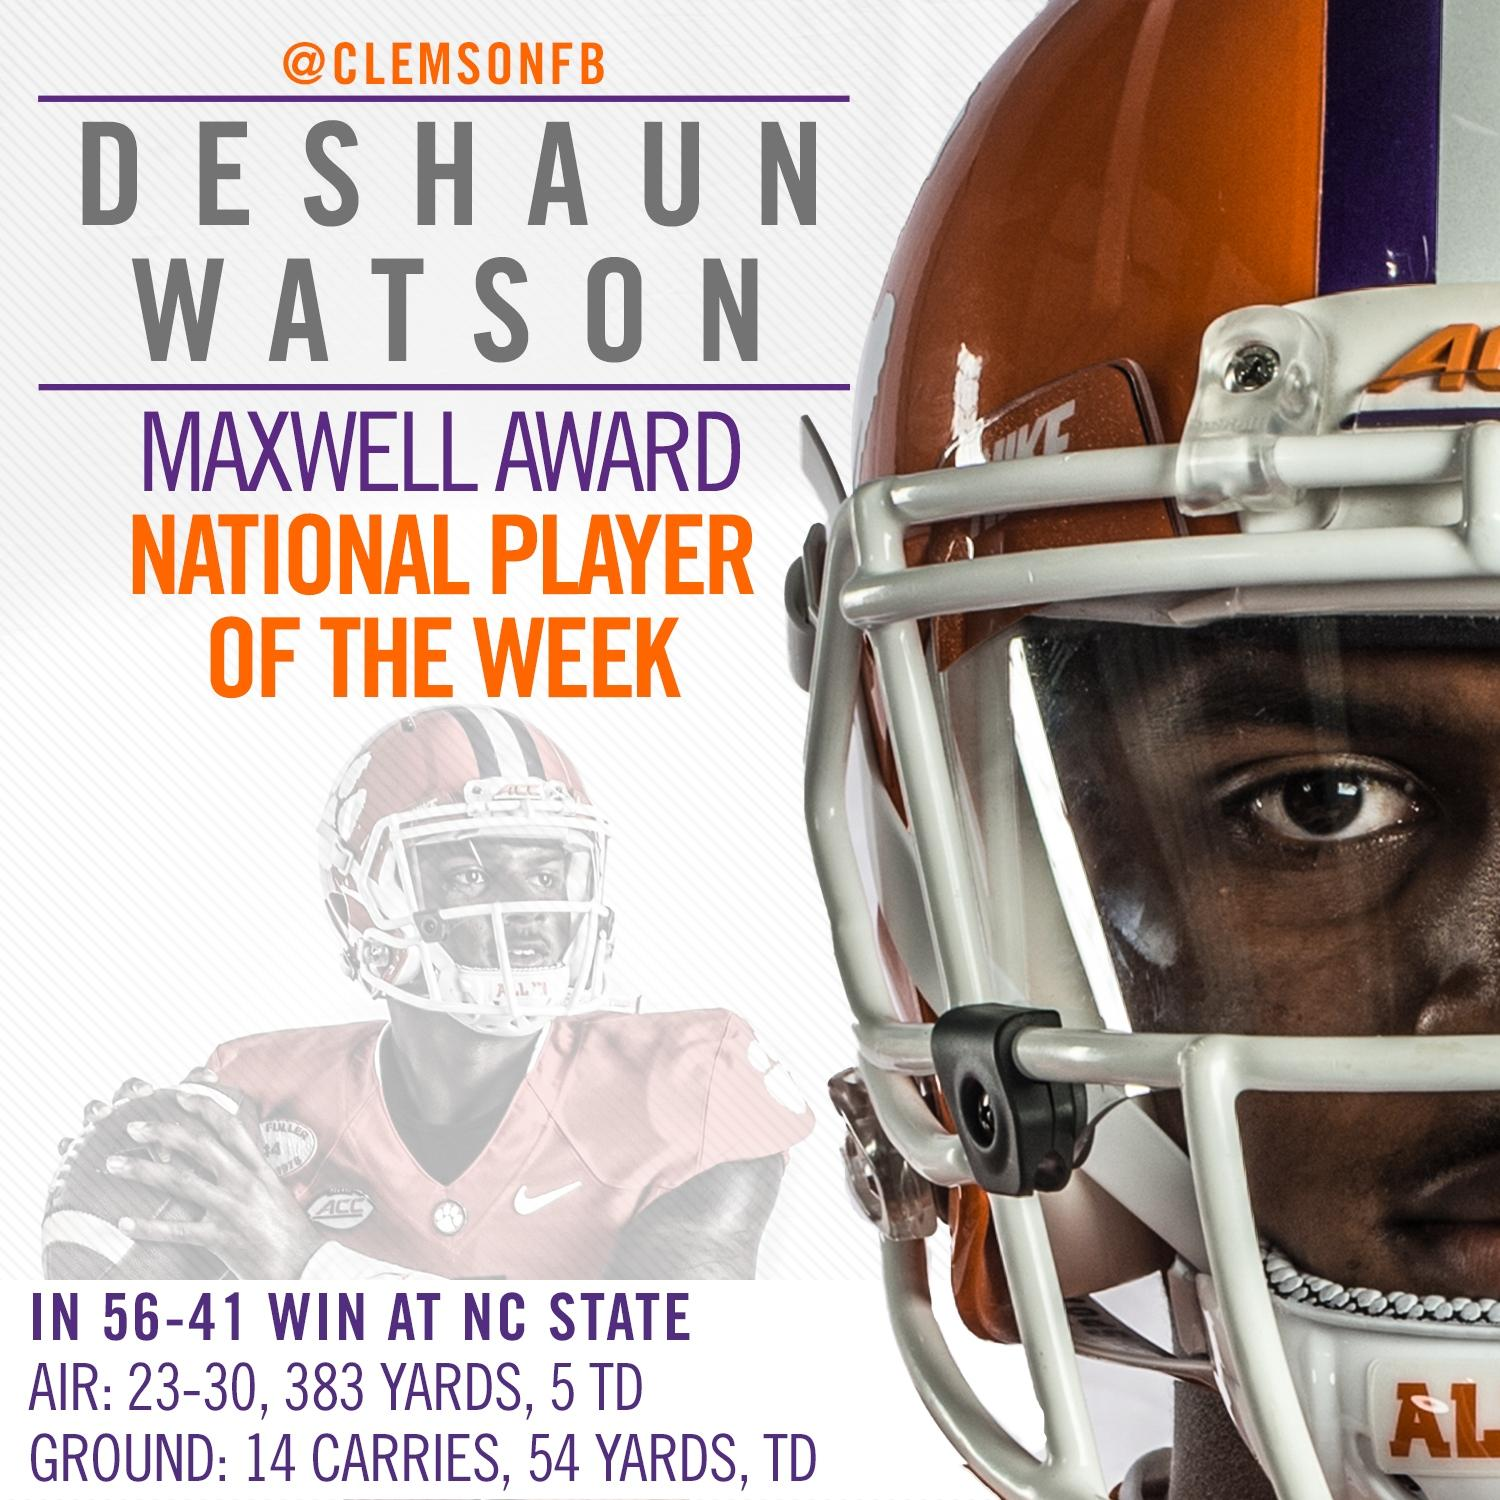 Watson Named National Player of the Week by Maxwell Award